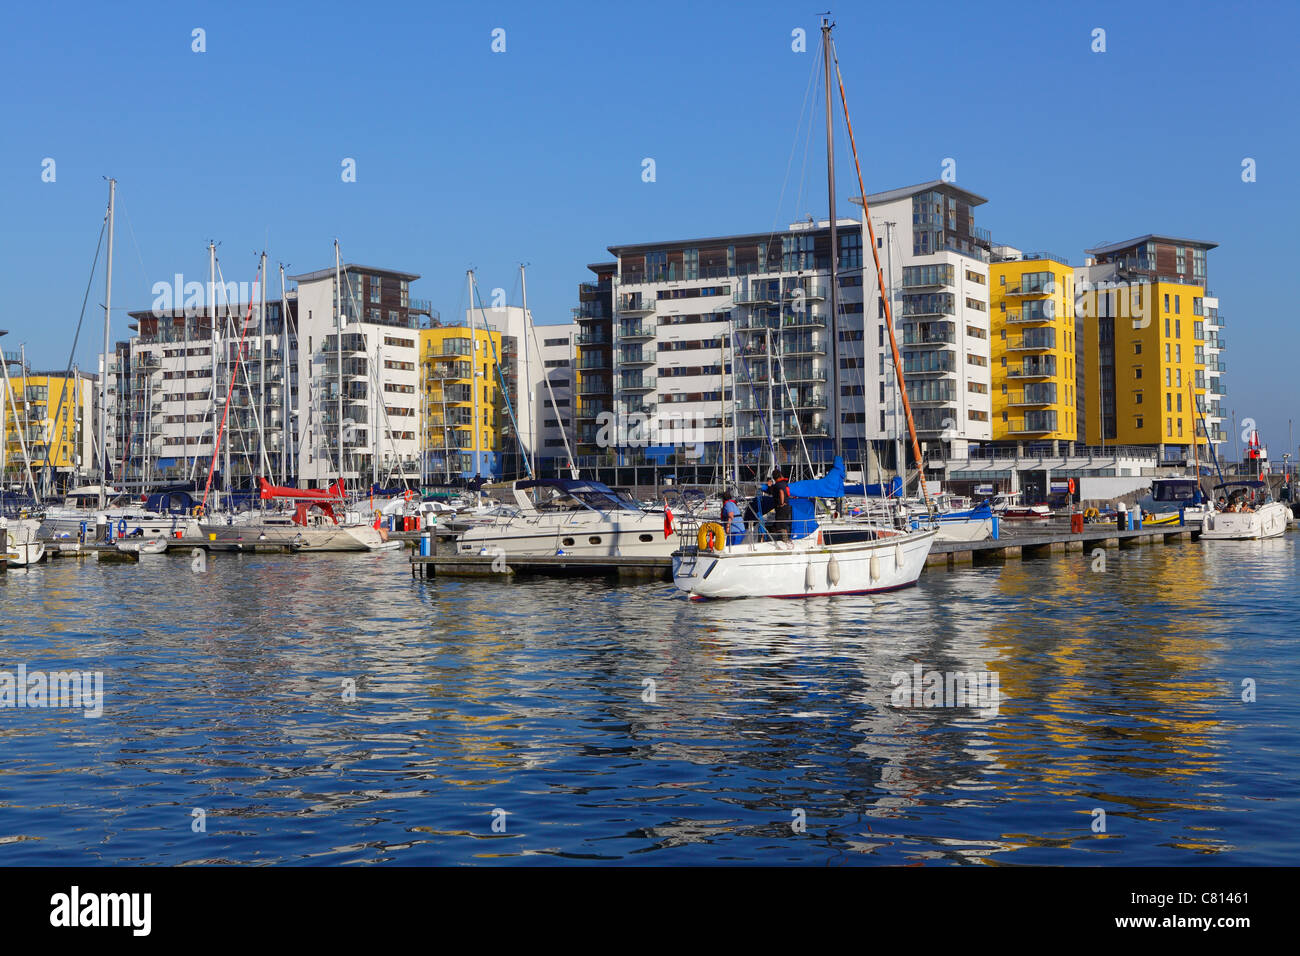 Apartments overlooking Sovereign Harbour Marina Eastbourne East Sussex UK GB - Stock Image